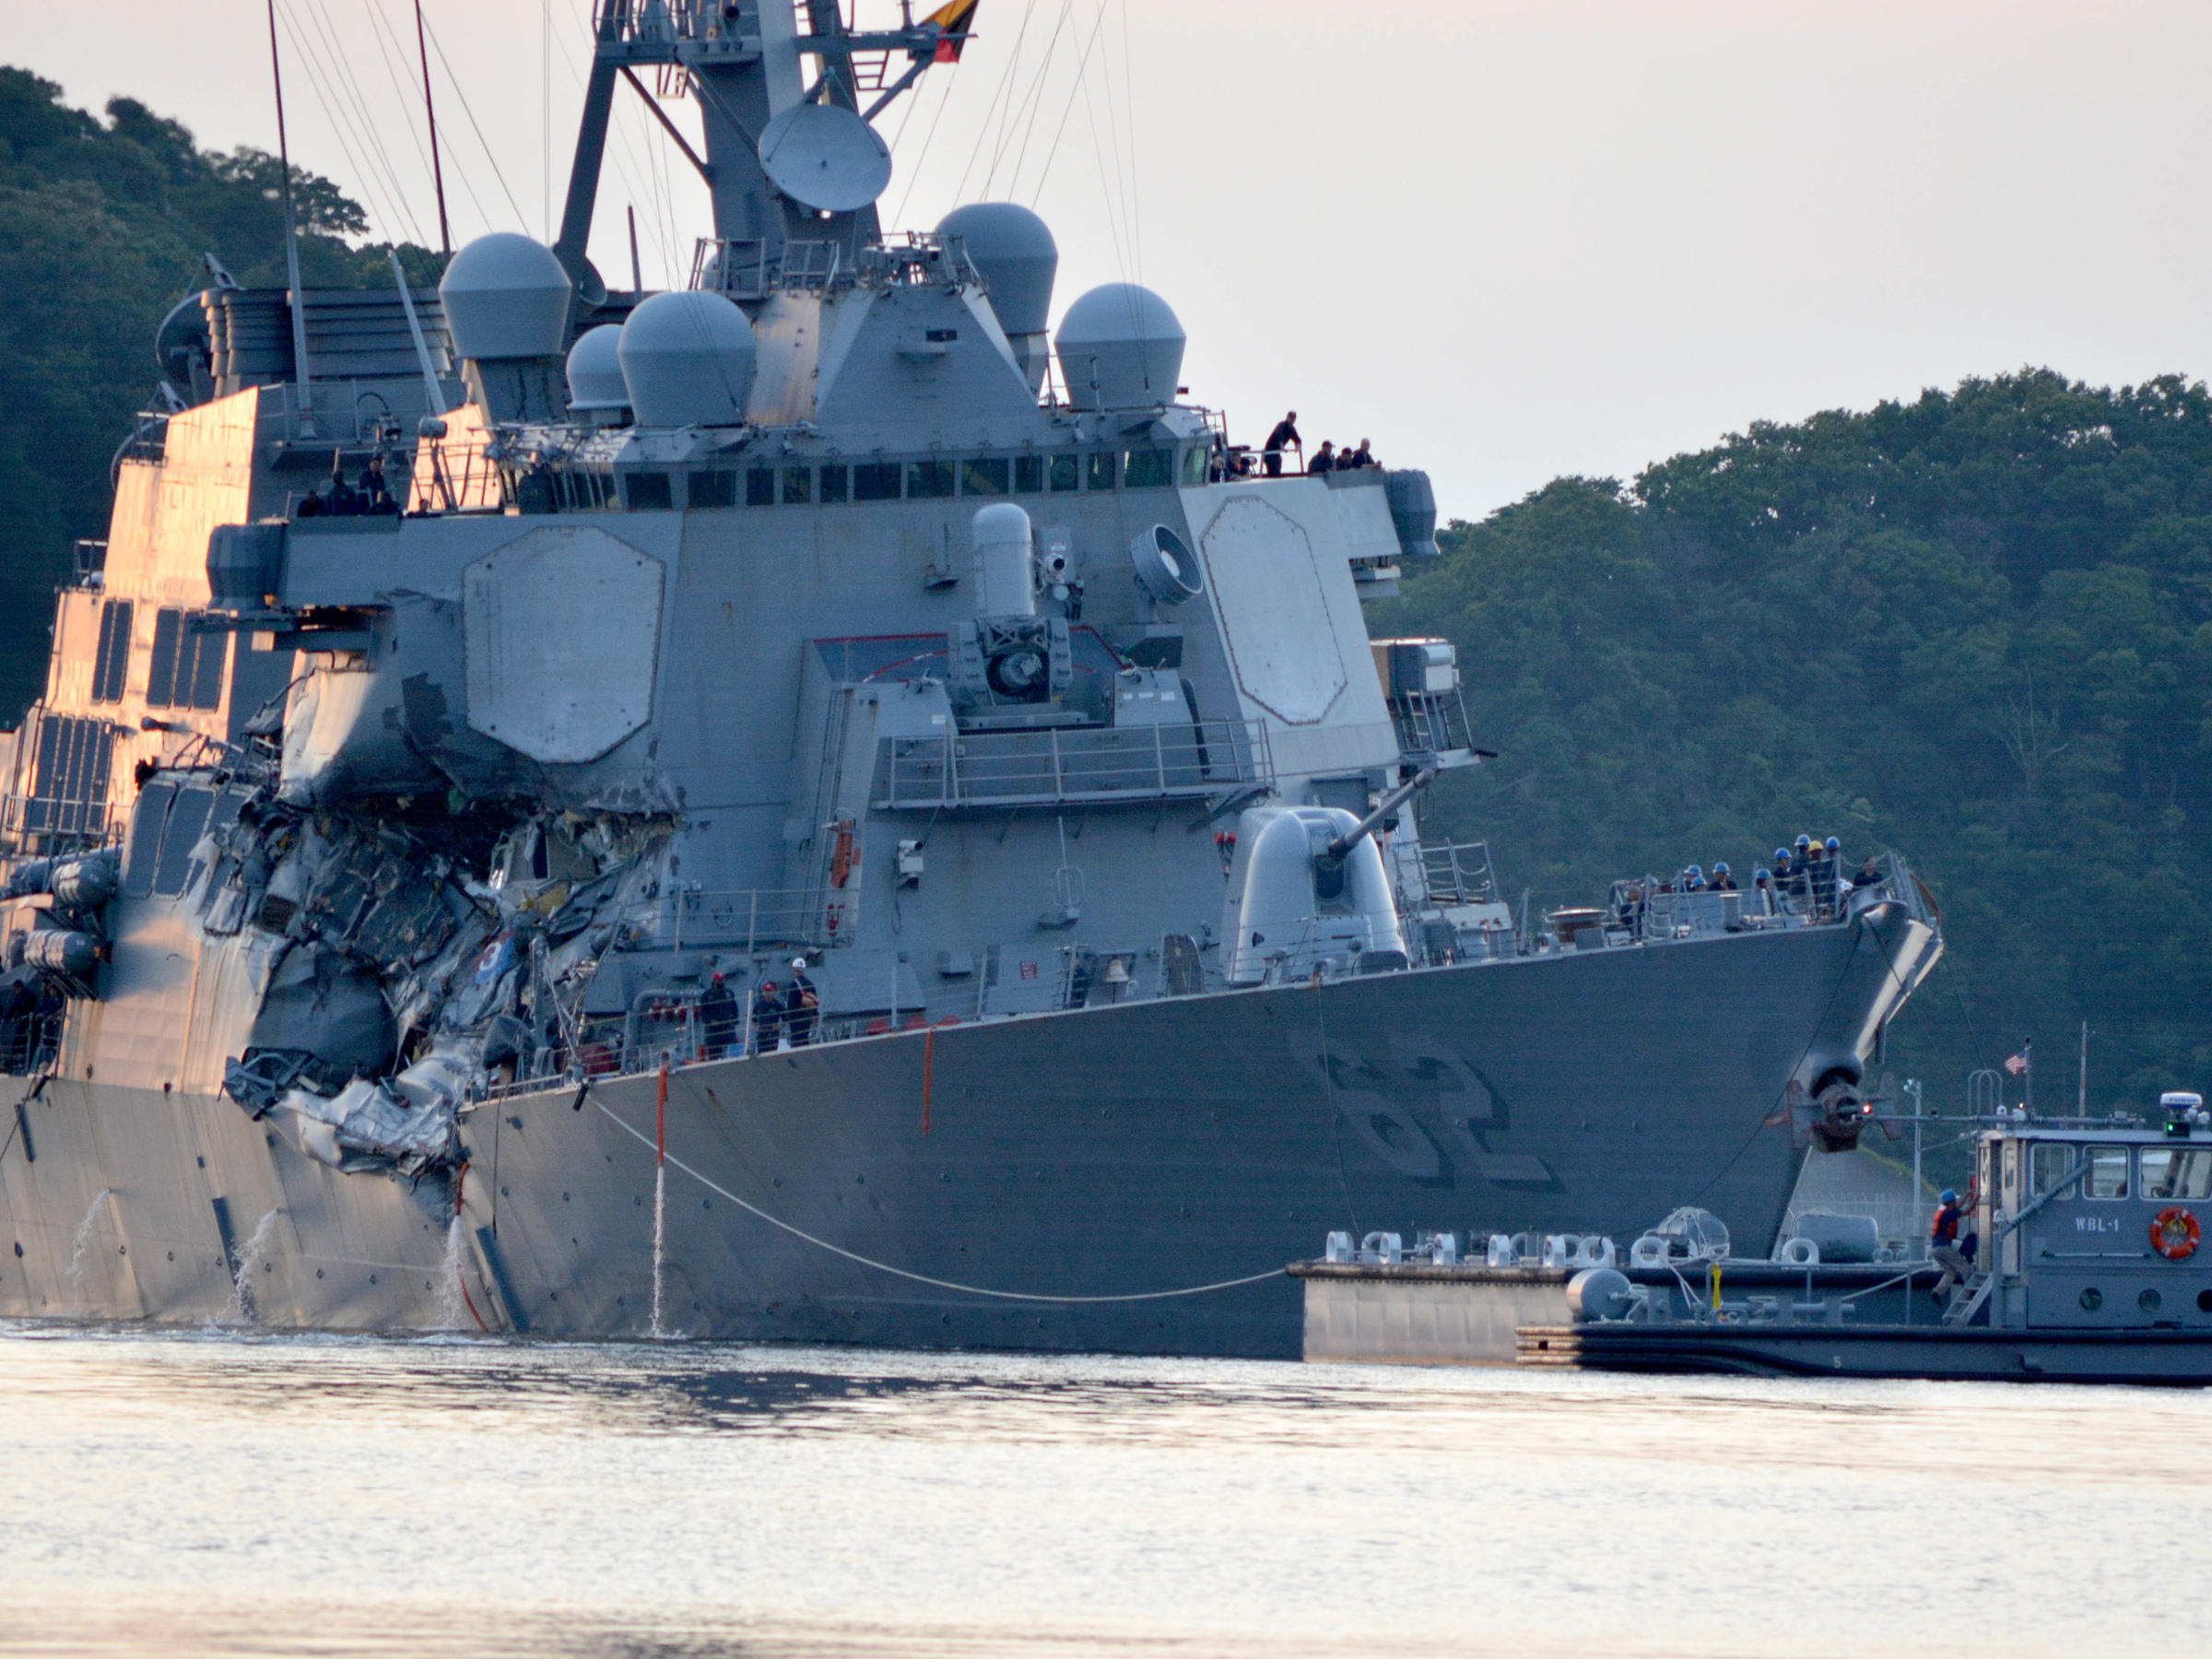 Bodies of 7 missing US Navy sailors found inside damaged warship